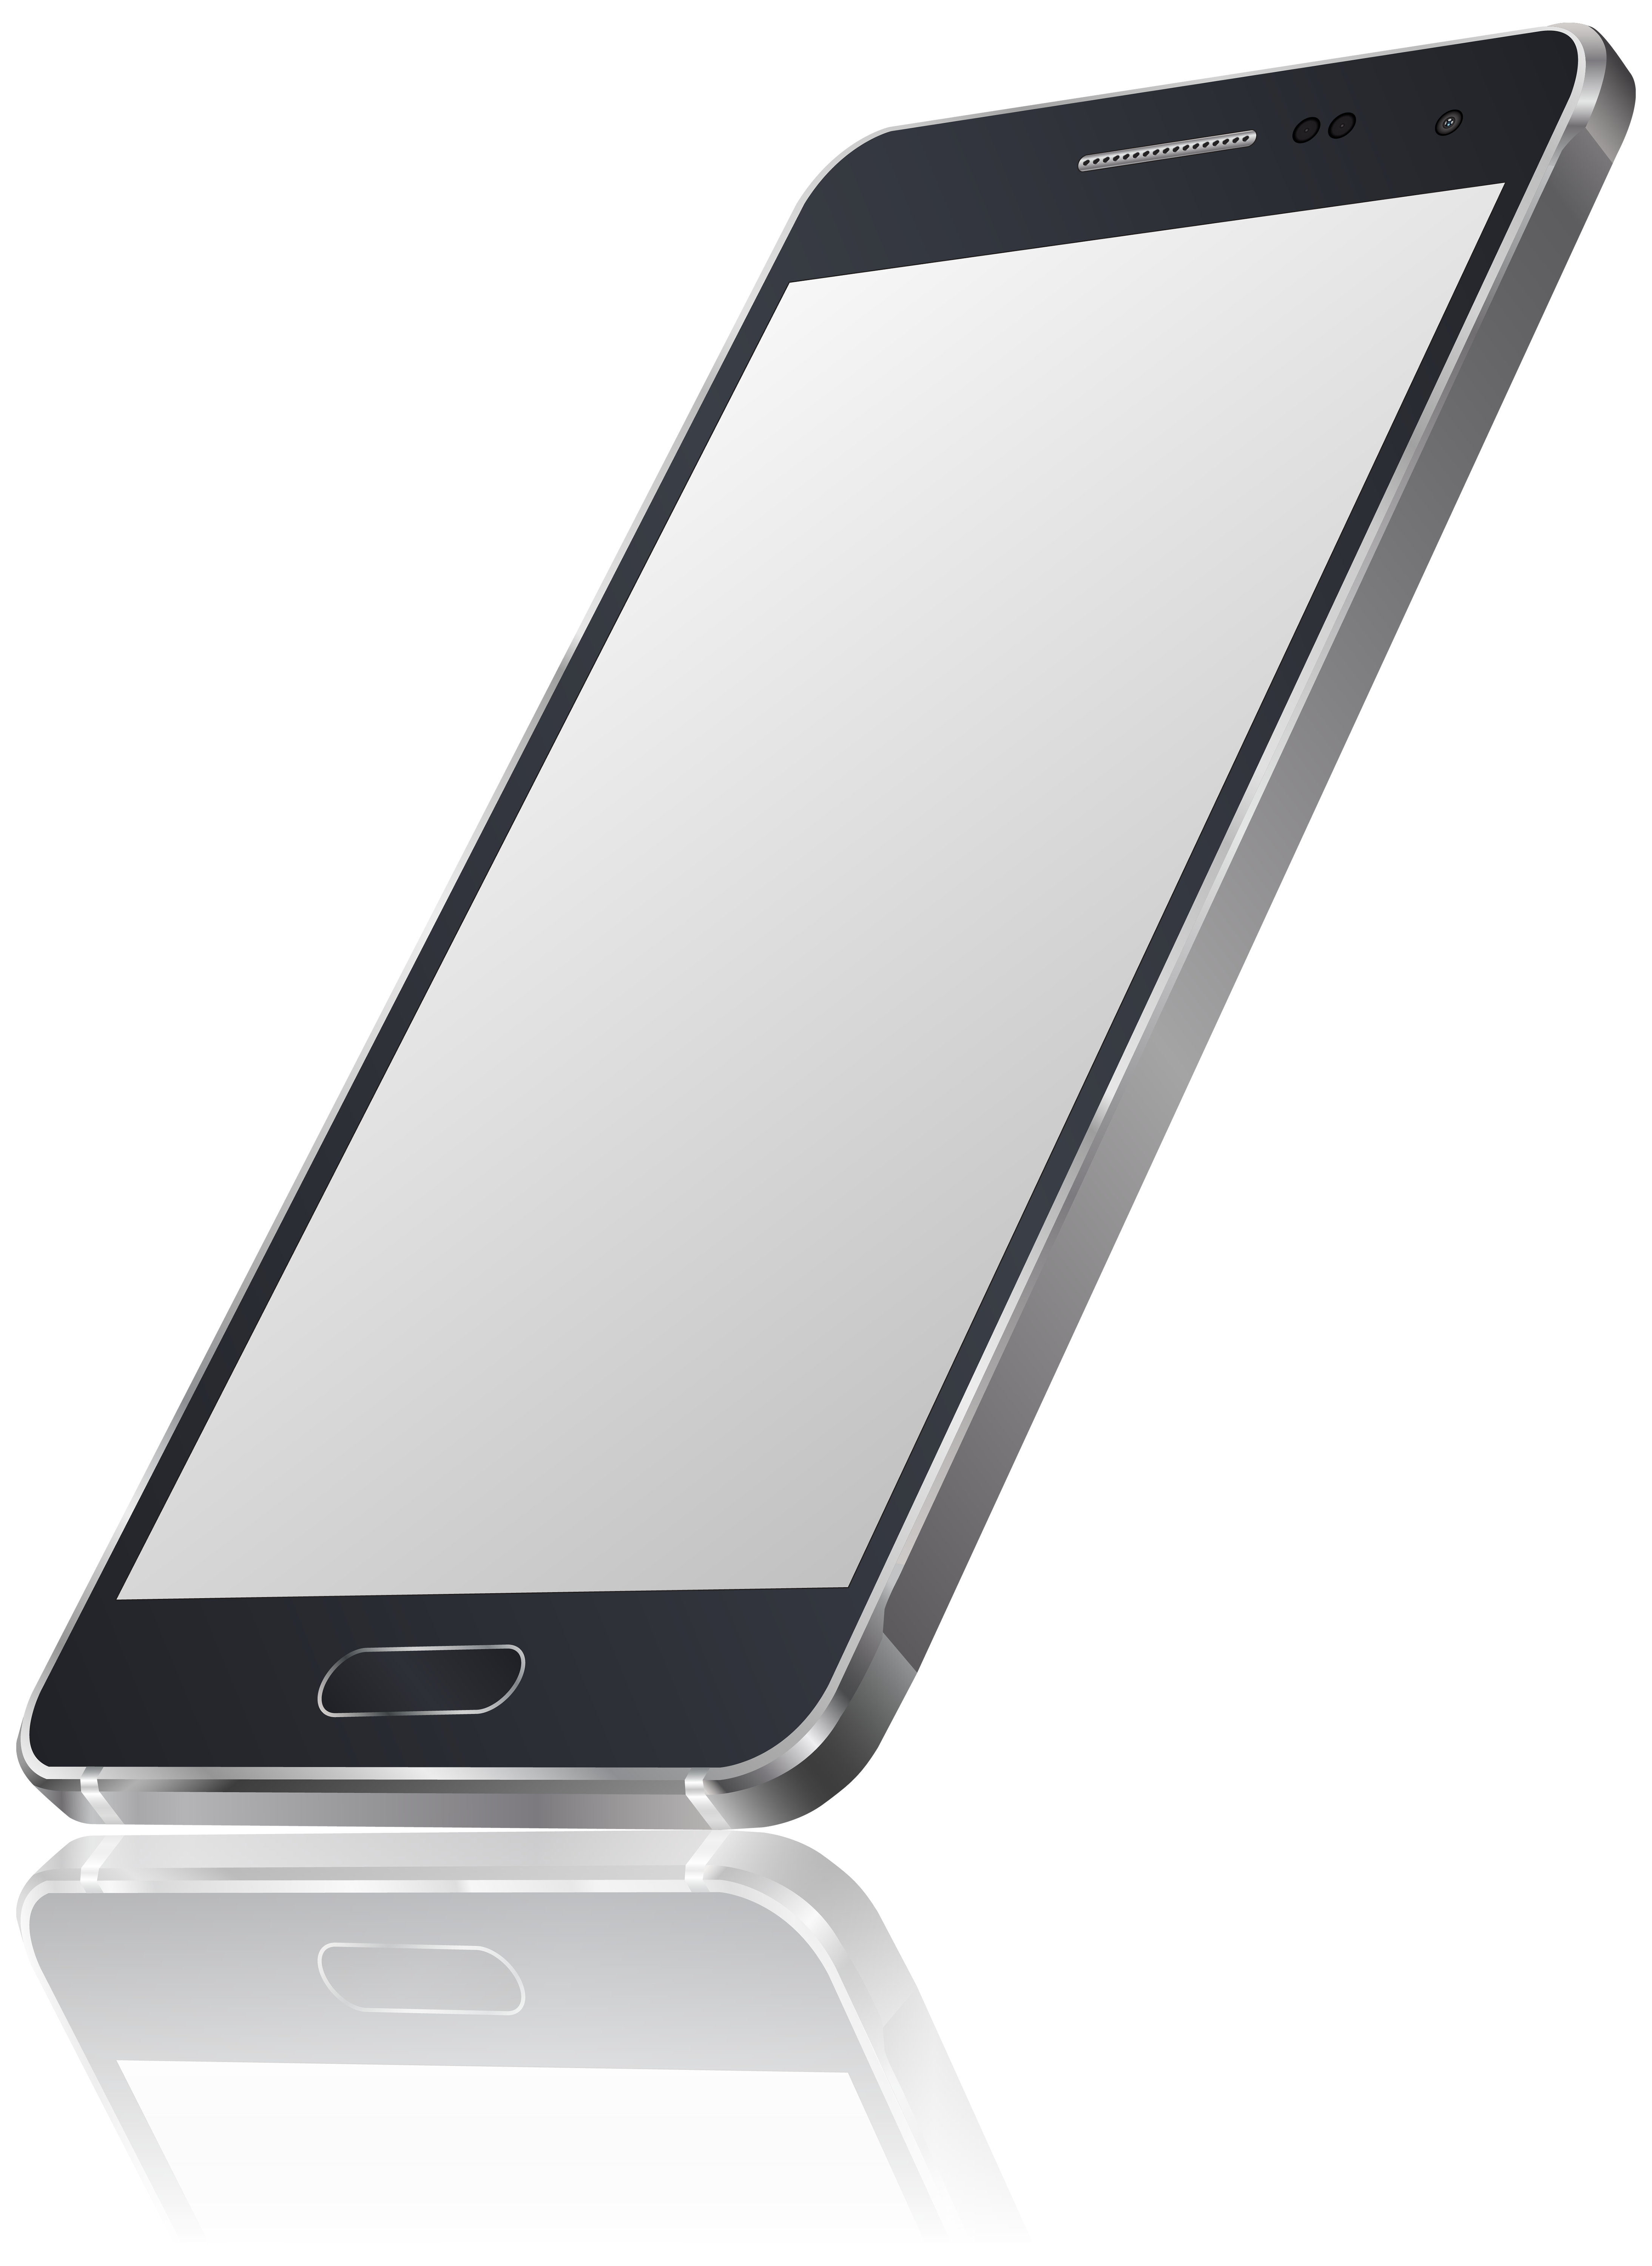 Smartphone PNG Clip Art Image.